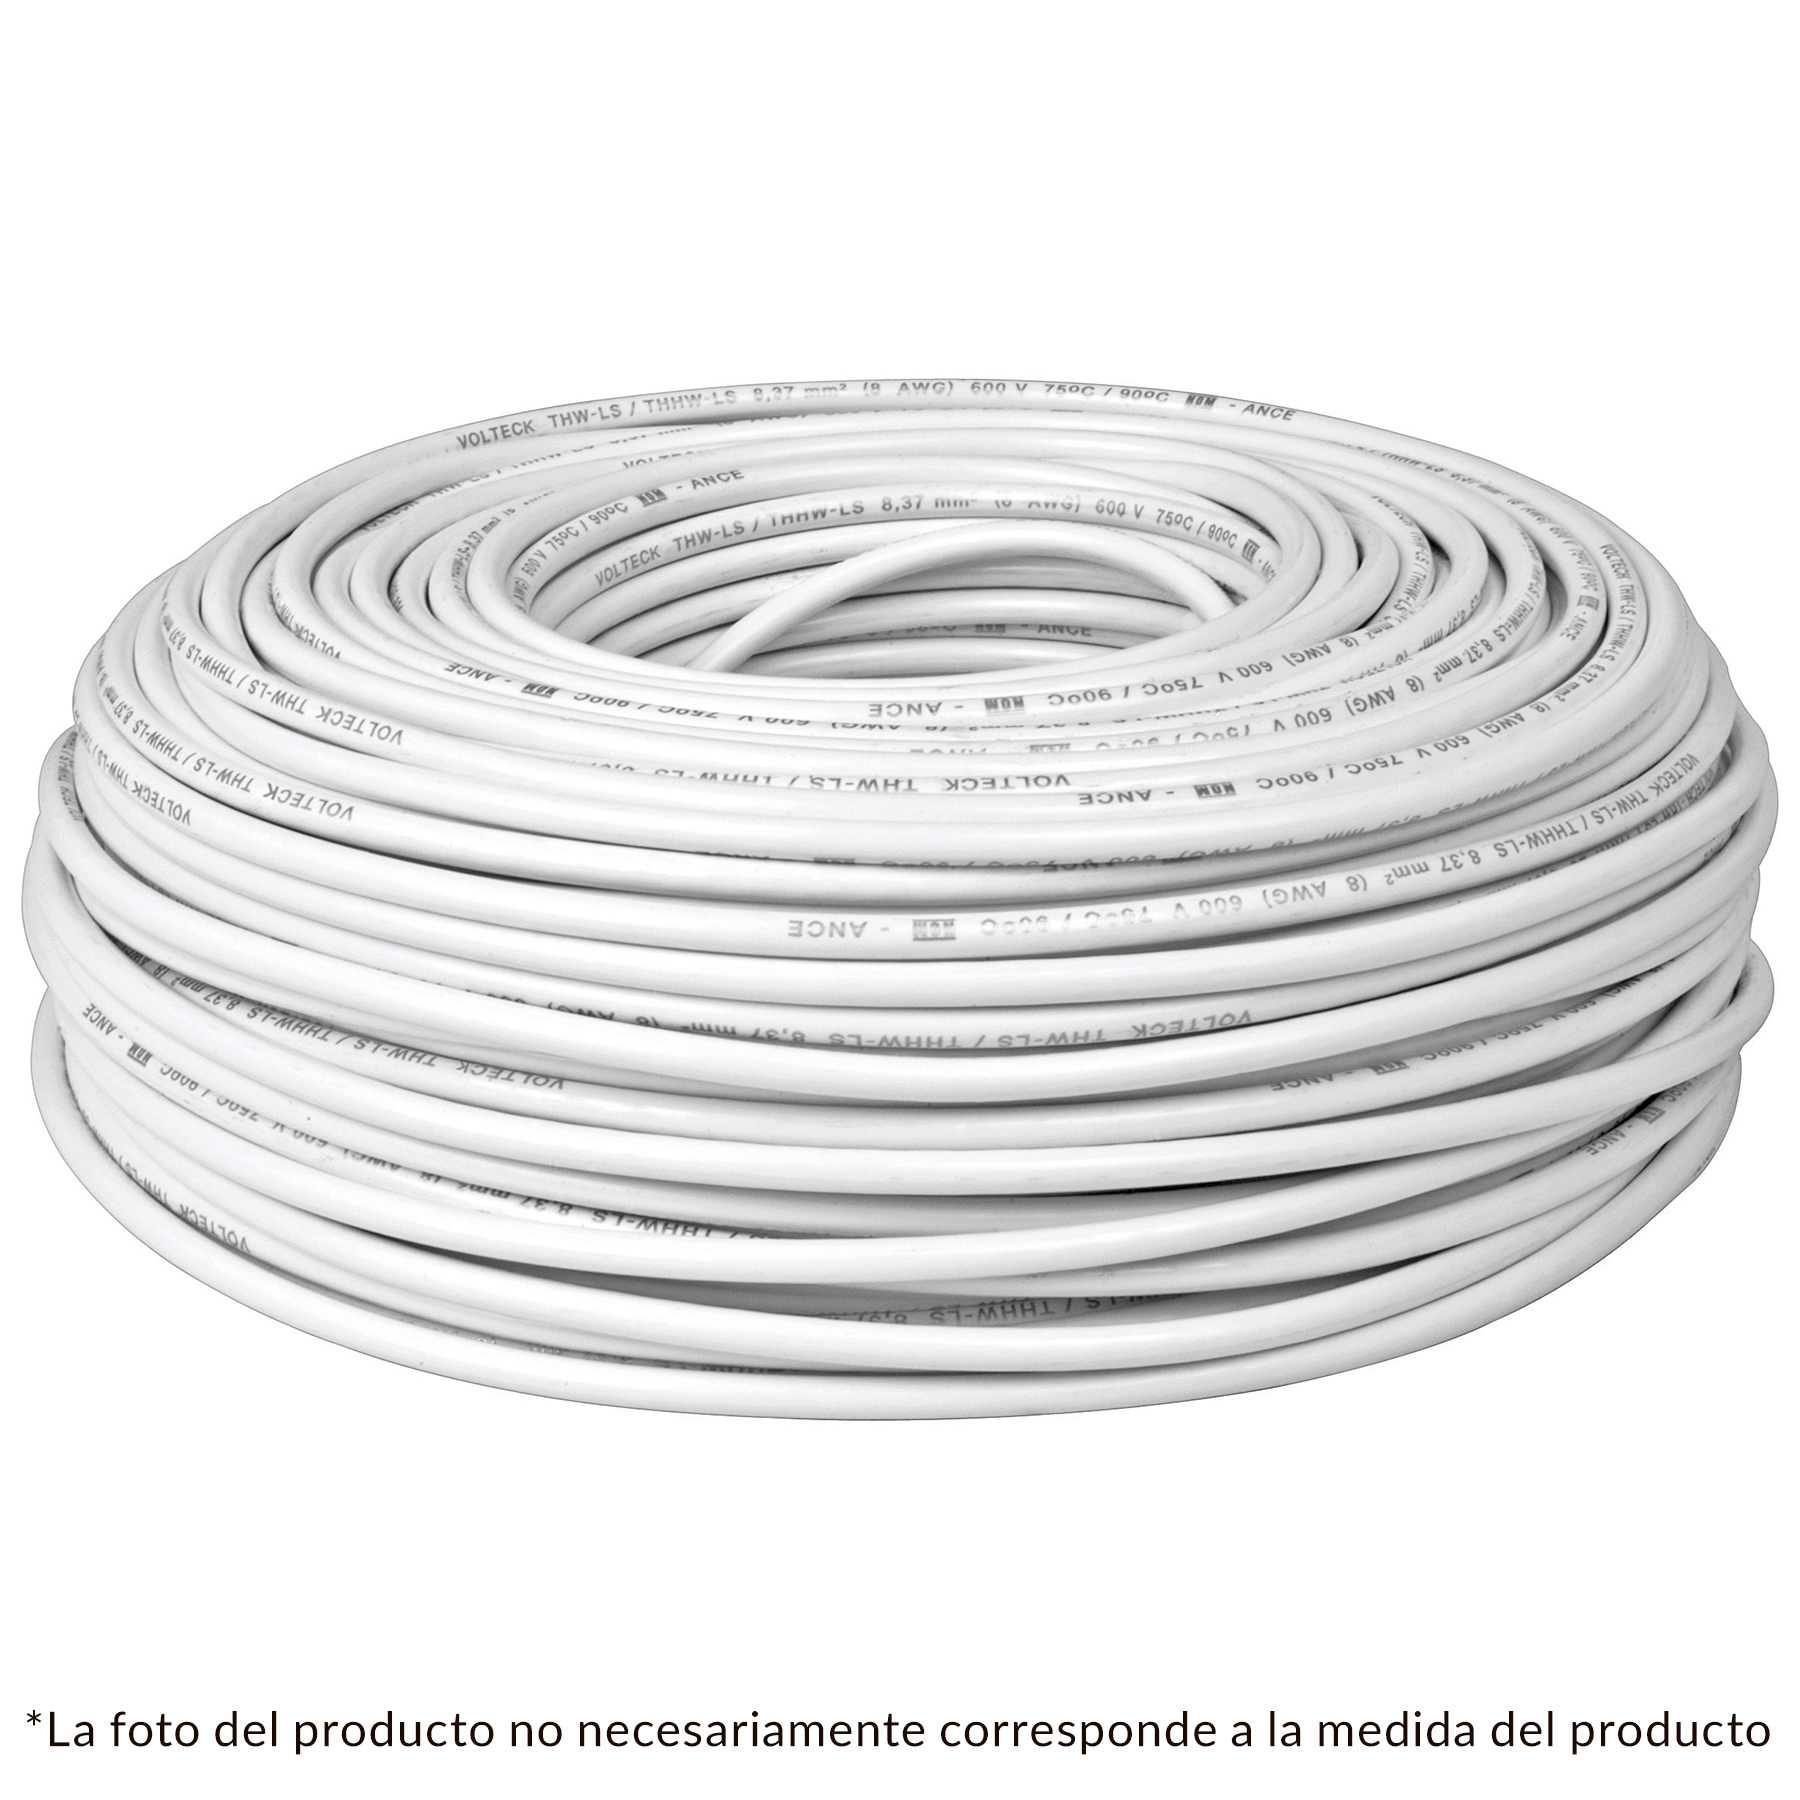 Cable THHW-LS, 14 AWG, color blanco rollo 100 m